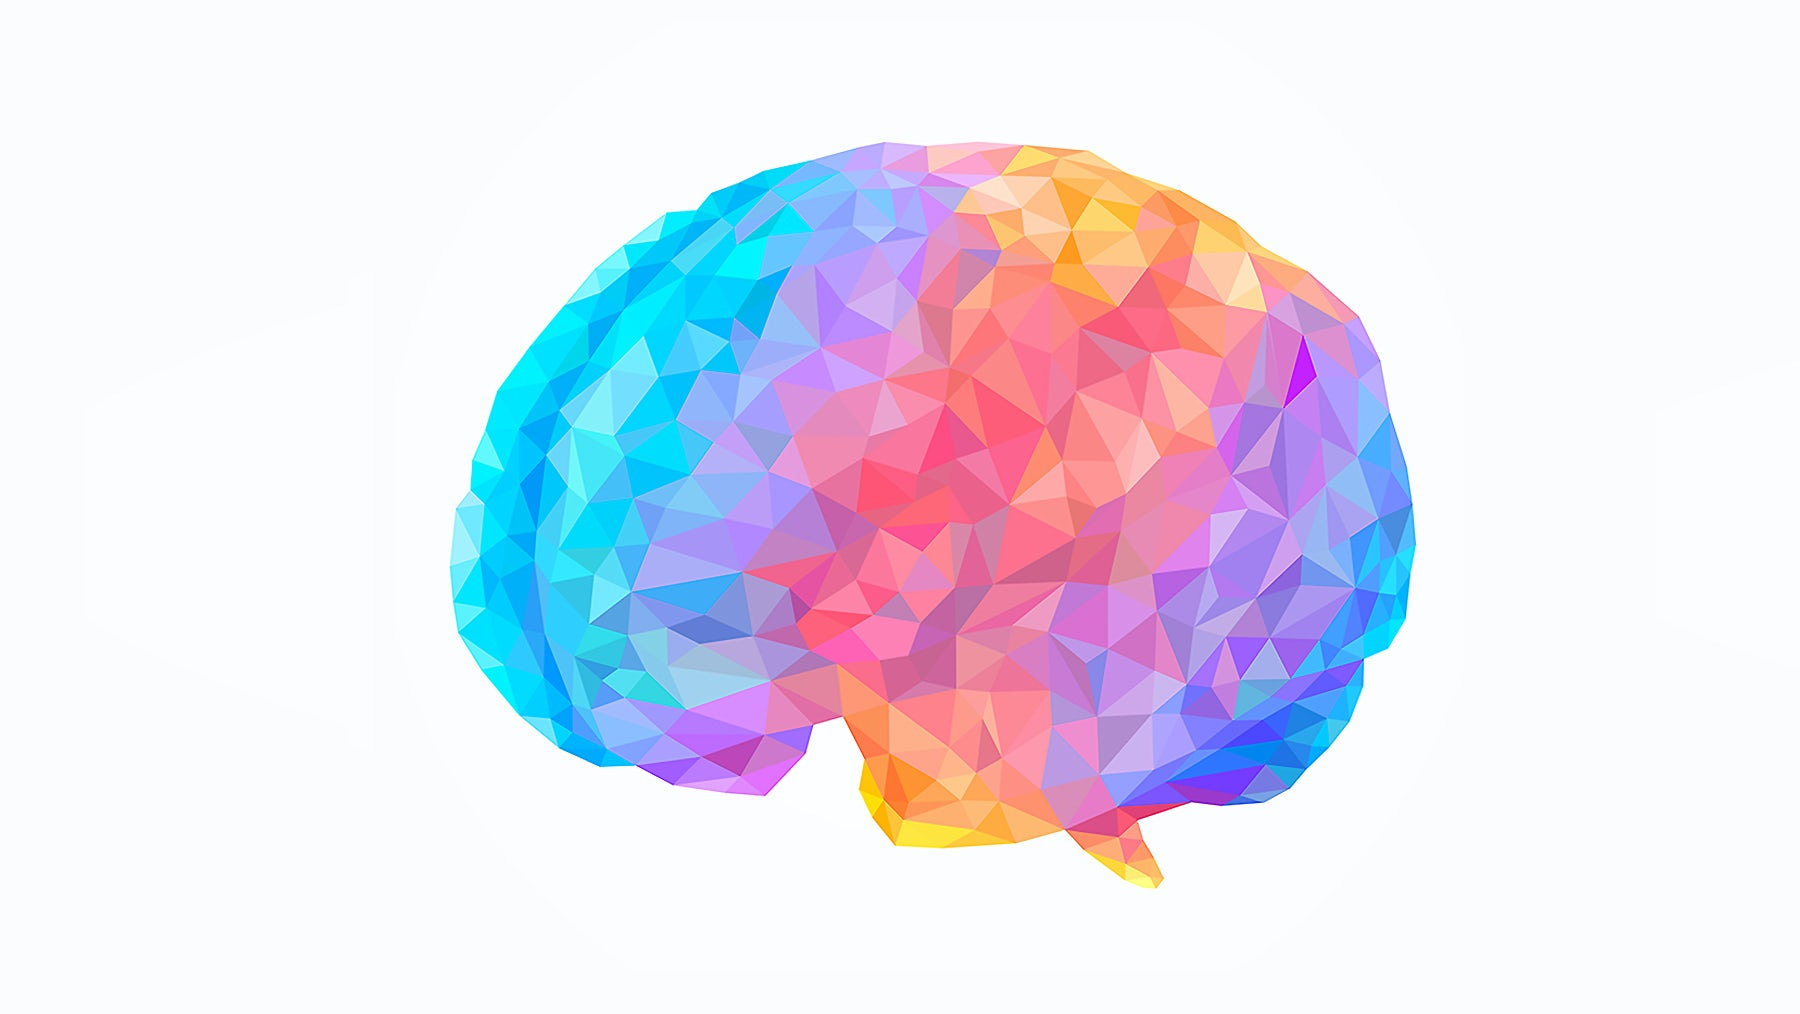 Impression of the human brain | Source: Shutterstock